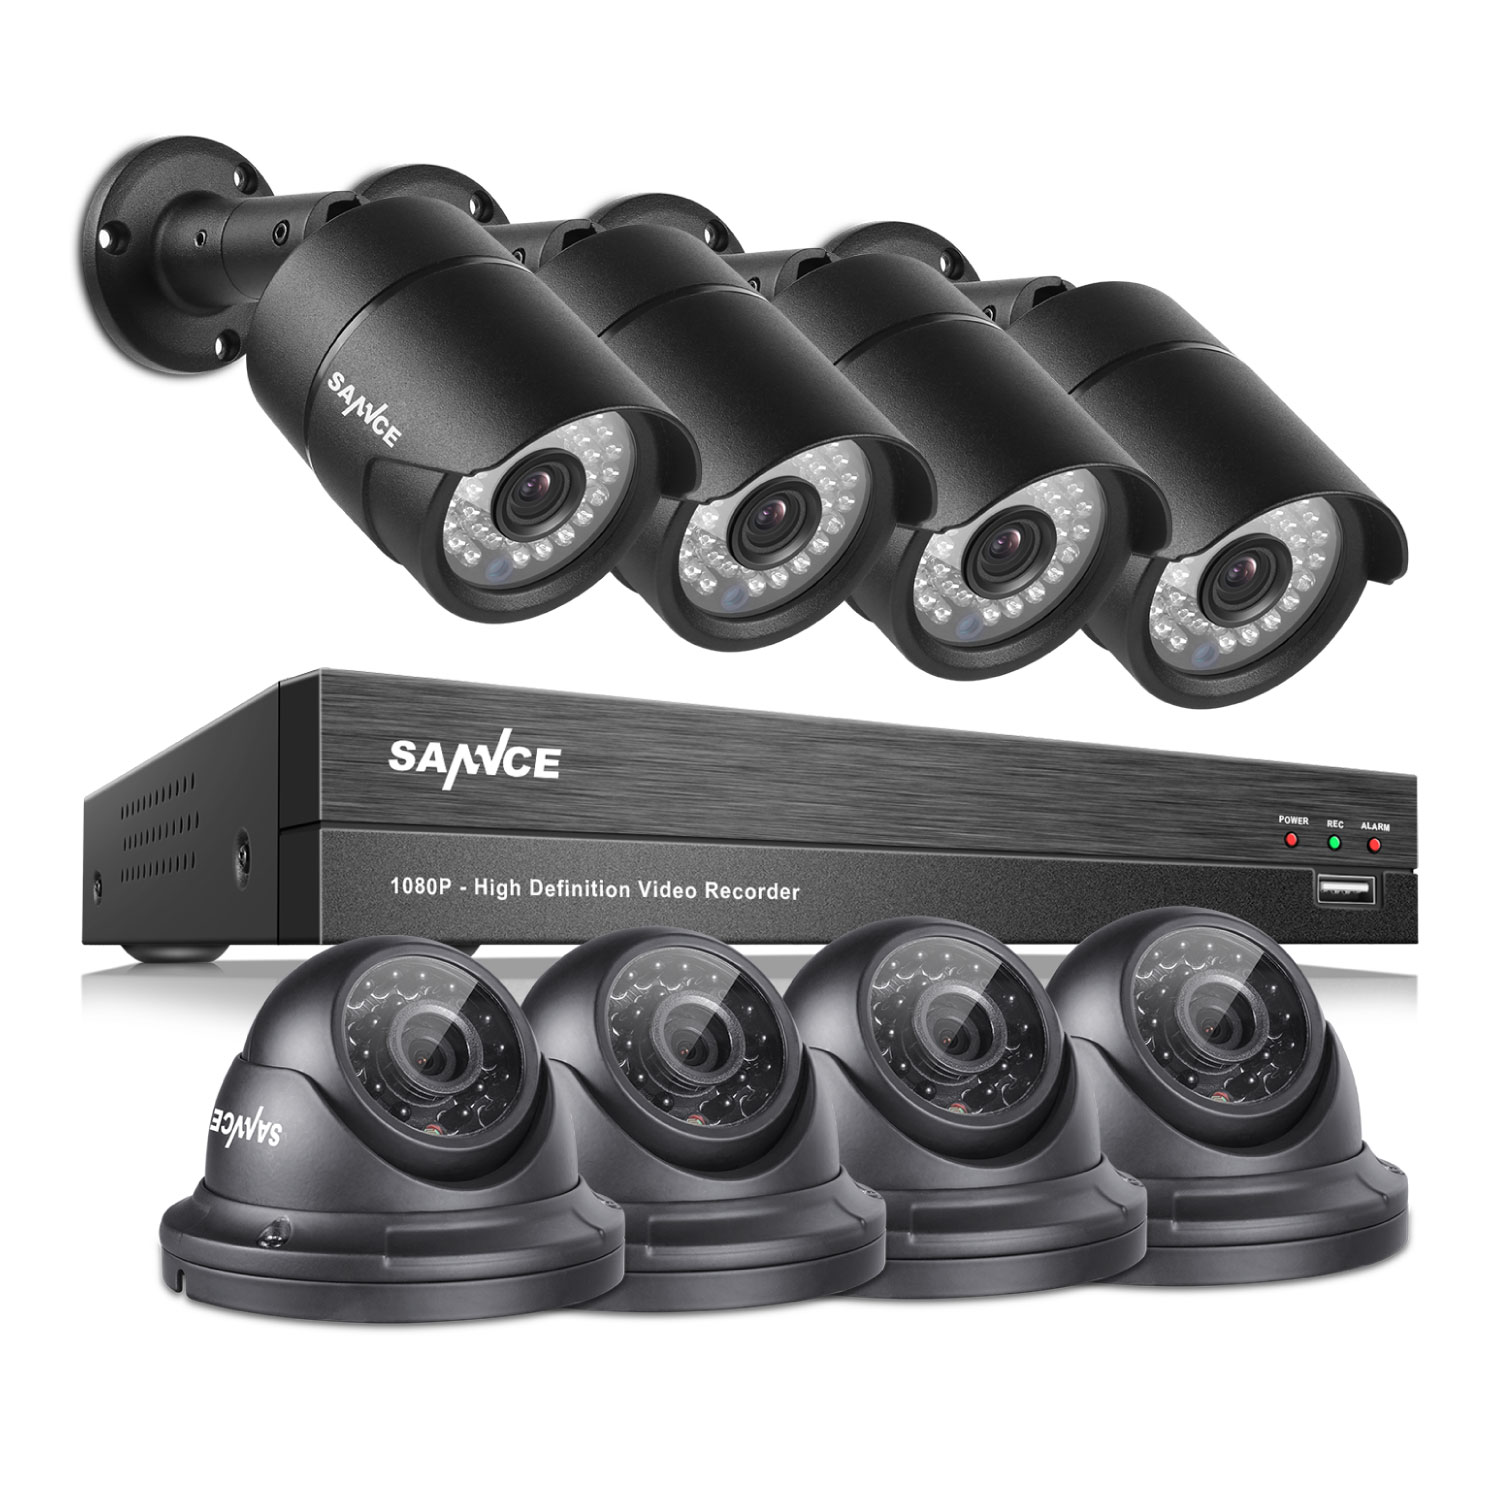 SANNCE 8 Channel 1080P AHD CCTV DVR Recorder with 8x 1920*1080p In/Outdoor Day Night IR-CUT Surveillance Video Security Camera System With NO Hard Drive Disk